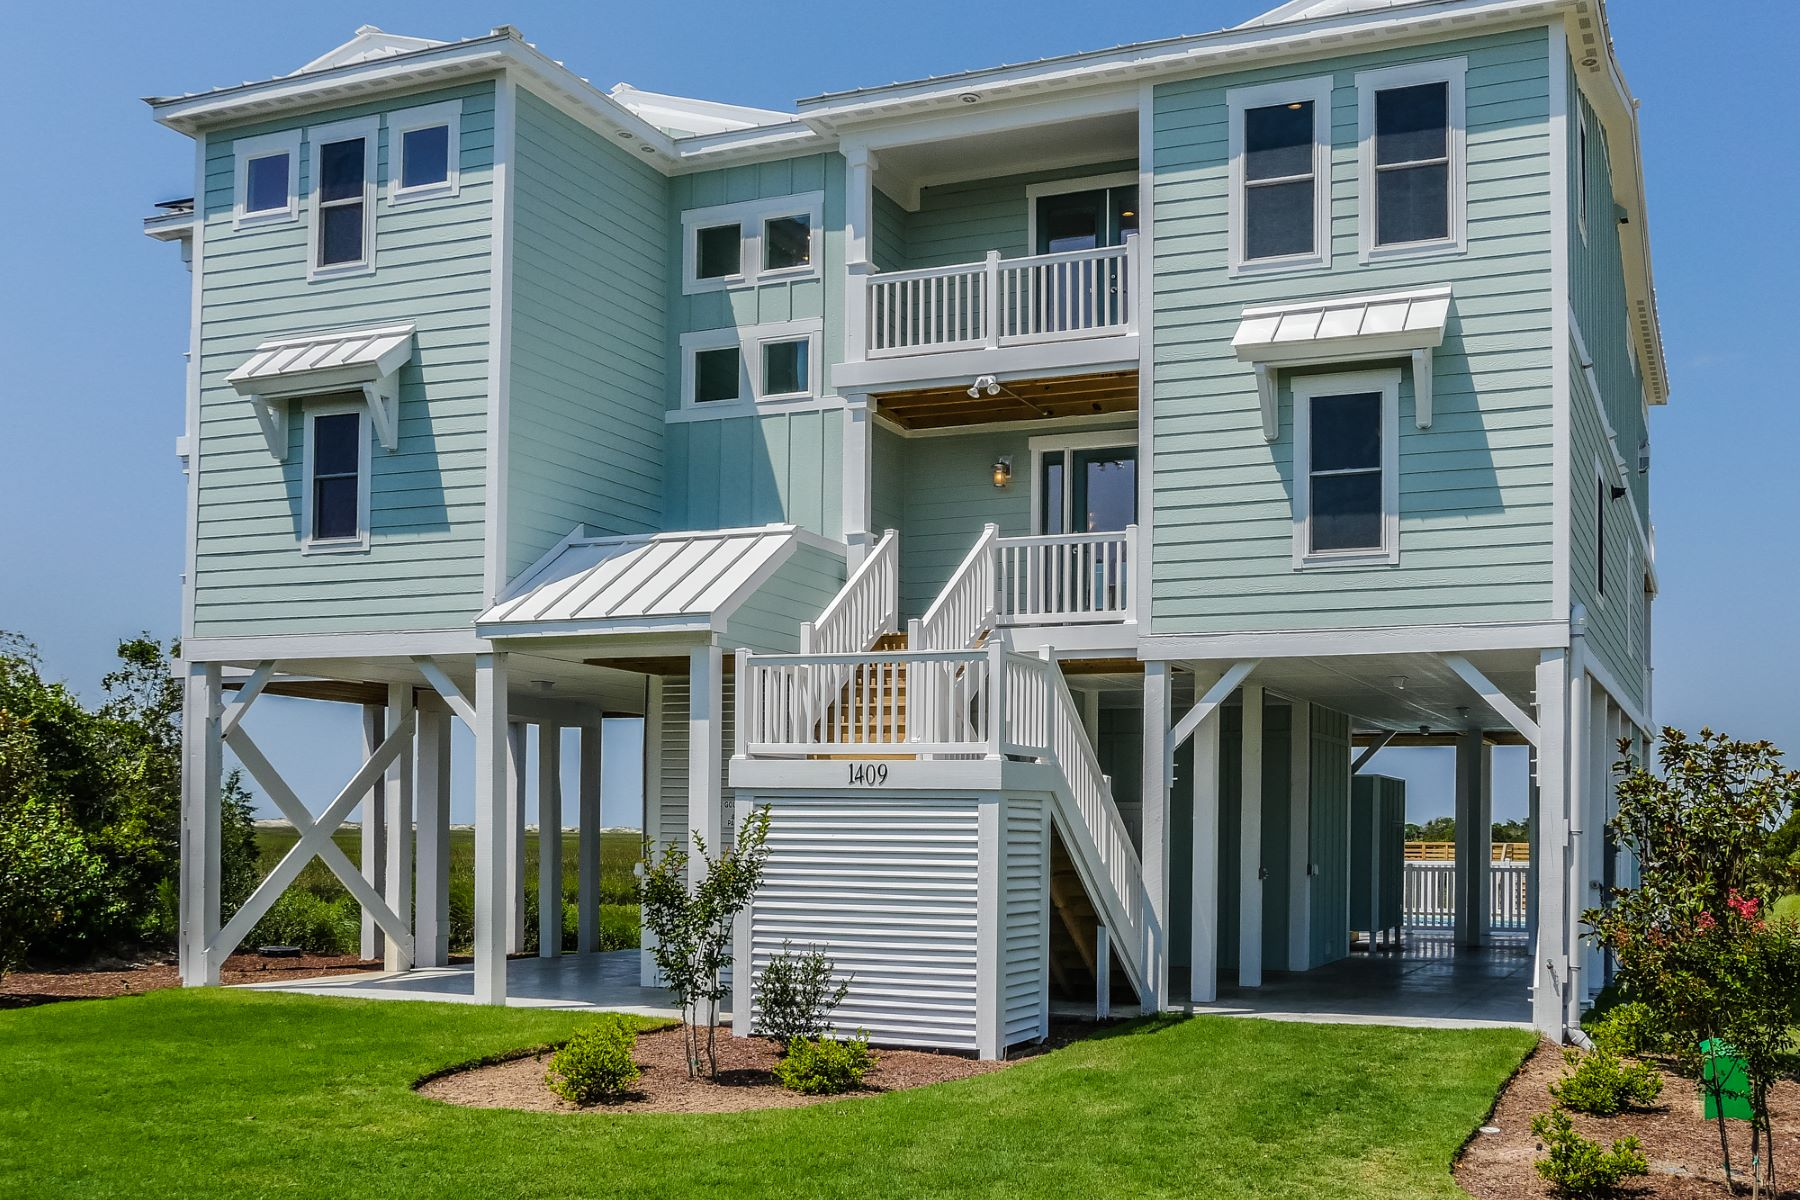 Single Family Home for Sale at Escape to the Oasis of Serenity 1409 Sunset Lane Sunset Beach, North Carolina 28468 United States